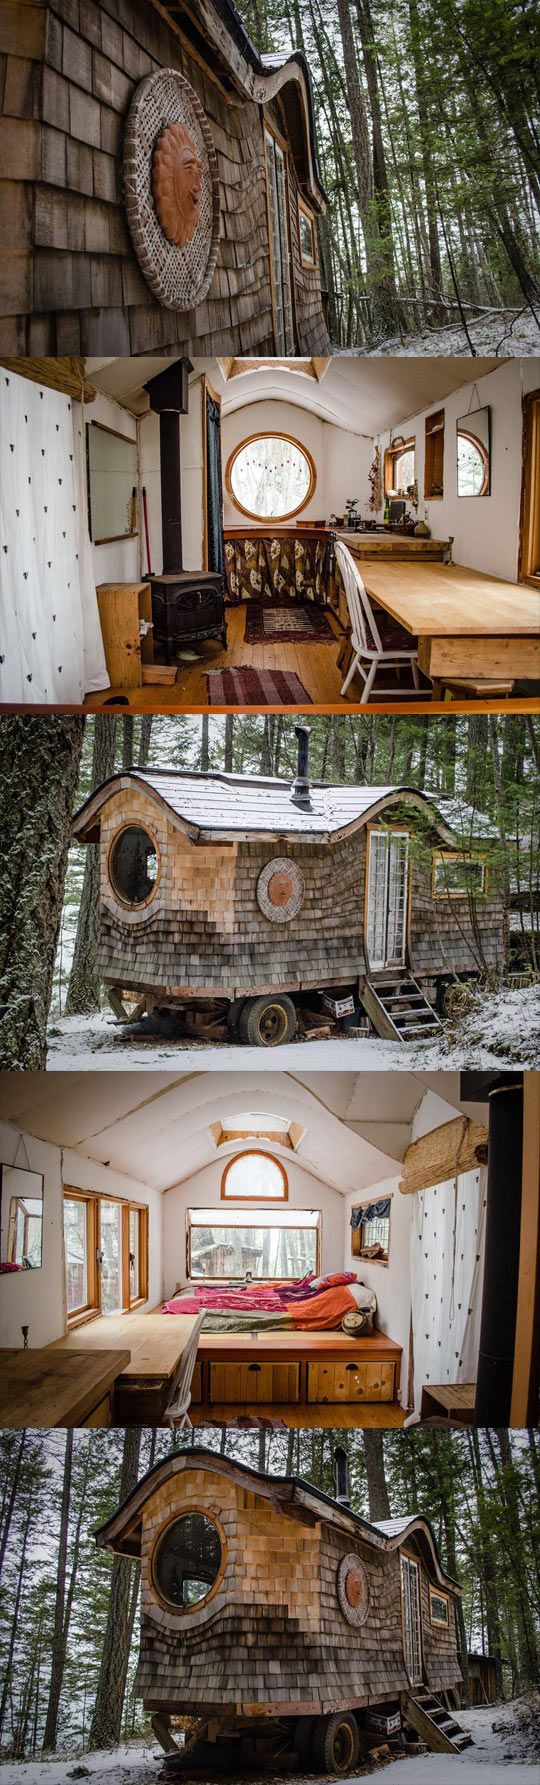 Just a tiny house...: